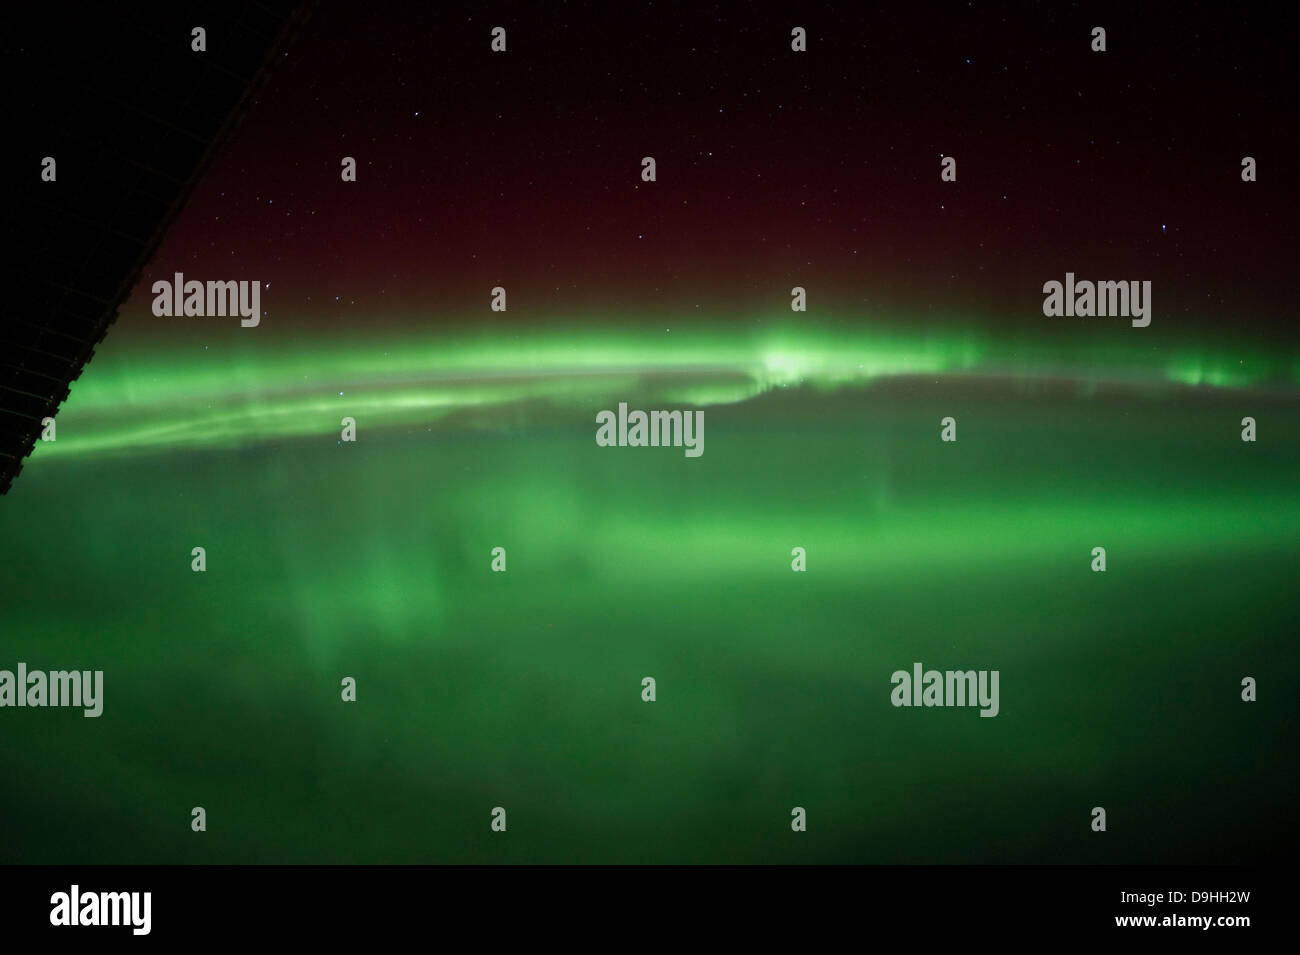 January 25, 2012 - Aurora Borealis as viewed onboard the International Space Station from approximately 240 miles - Stock Image